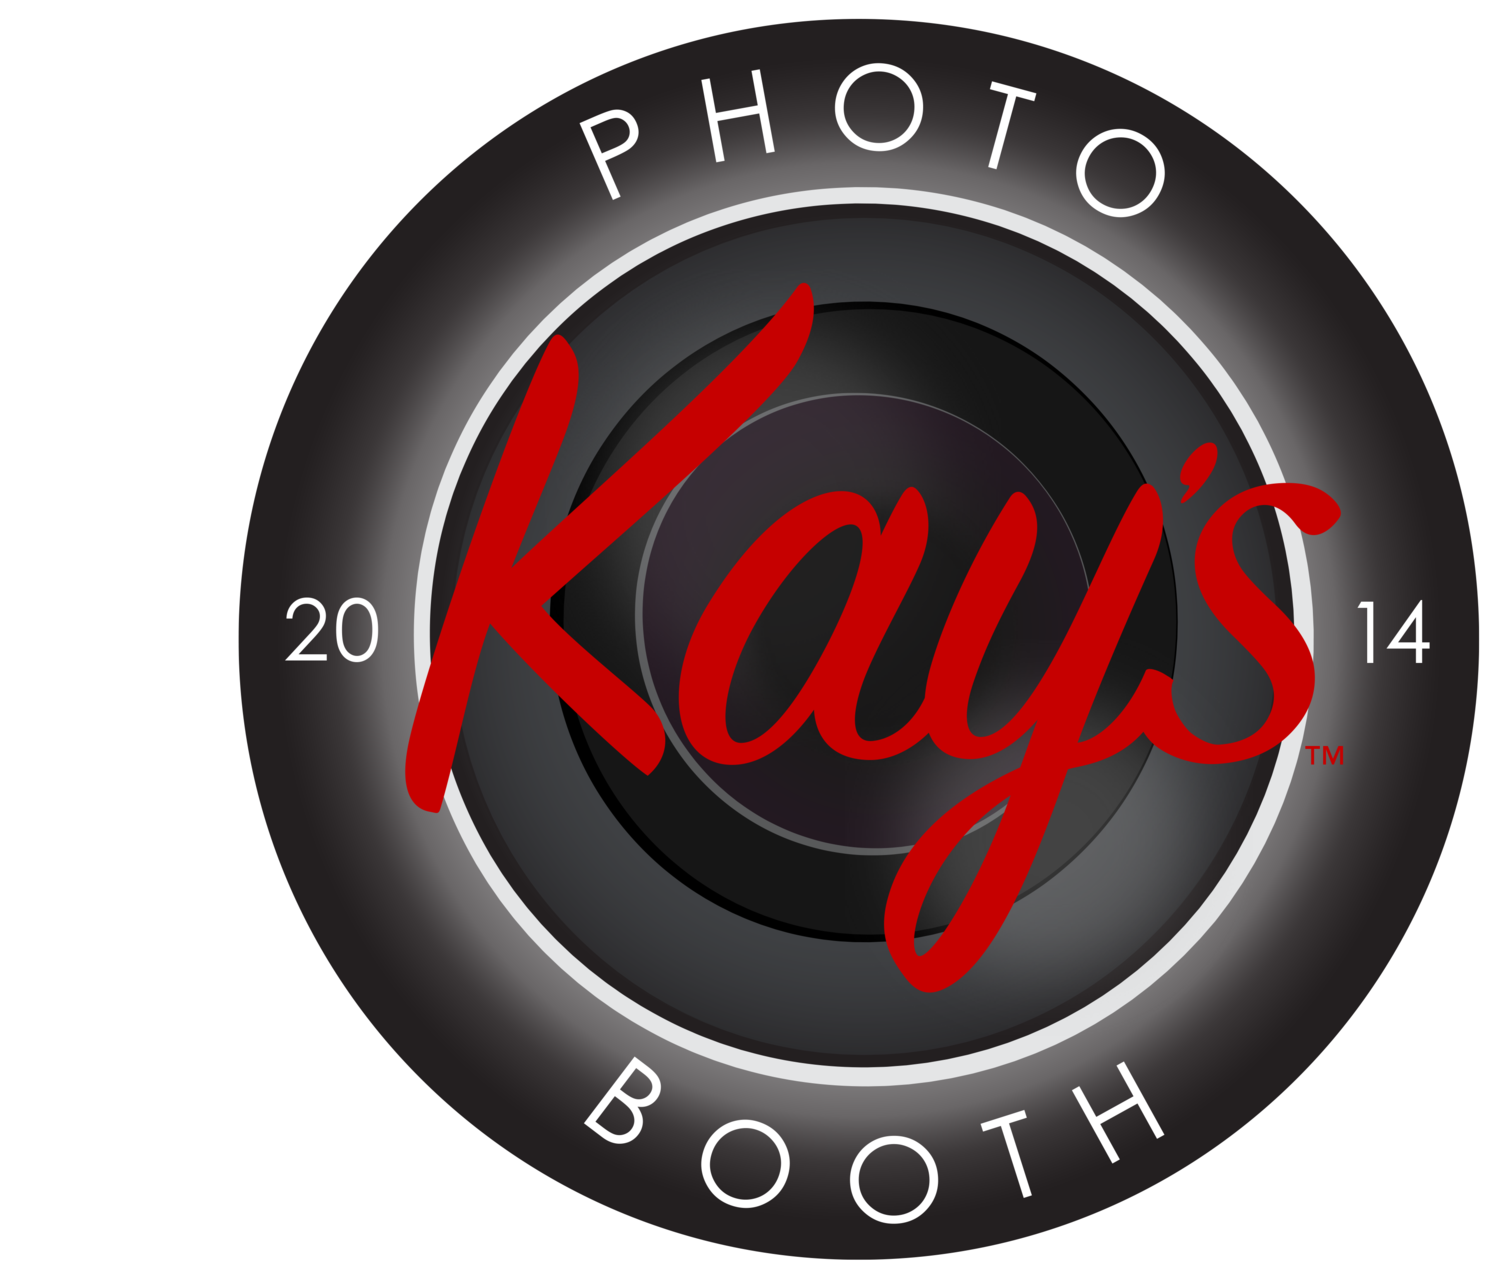 Kay's Photo Booth